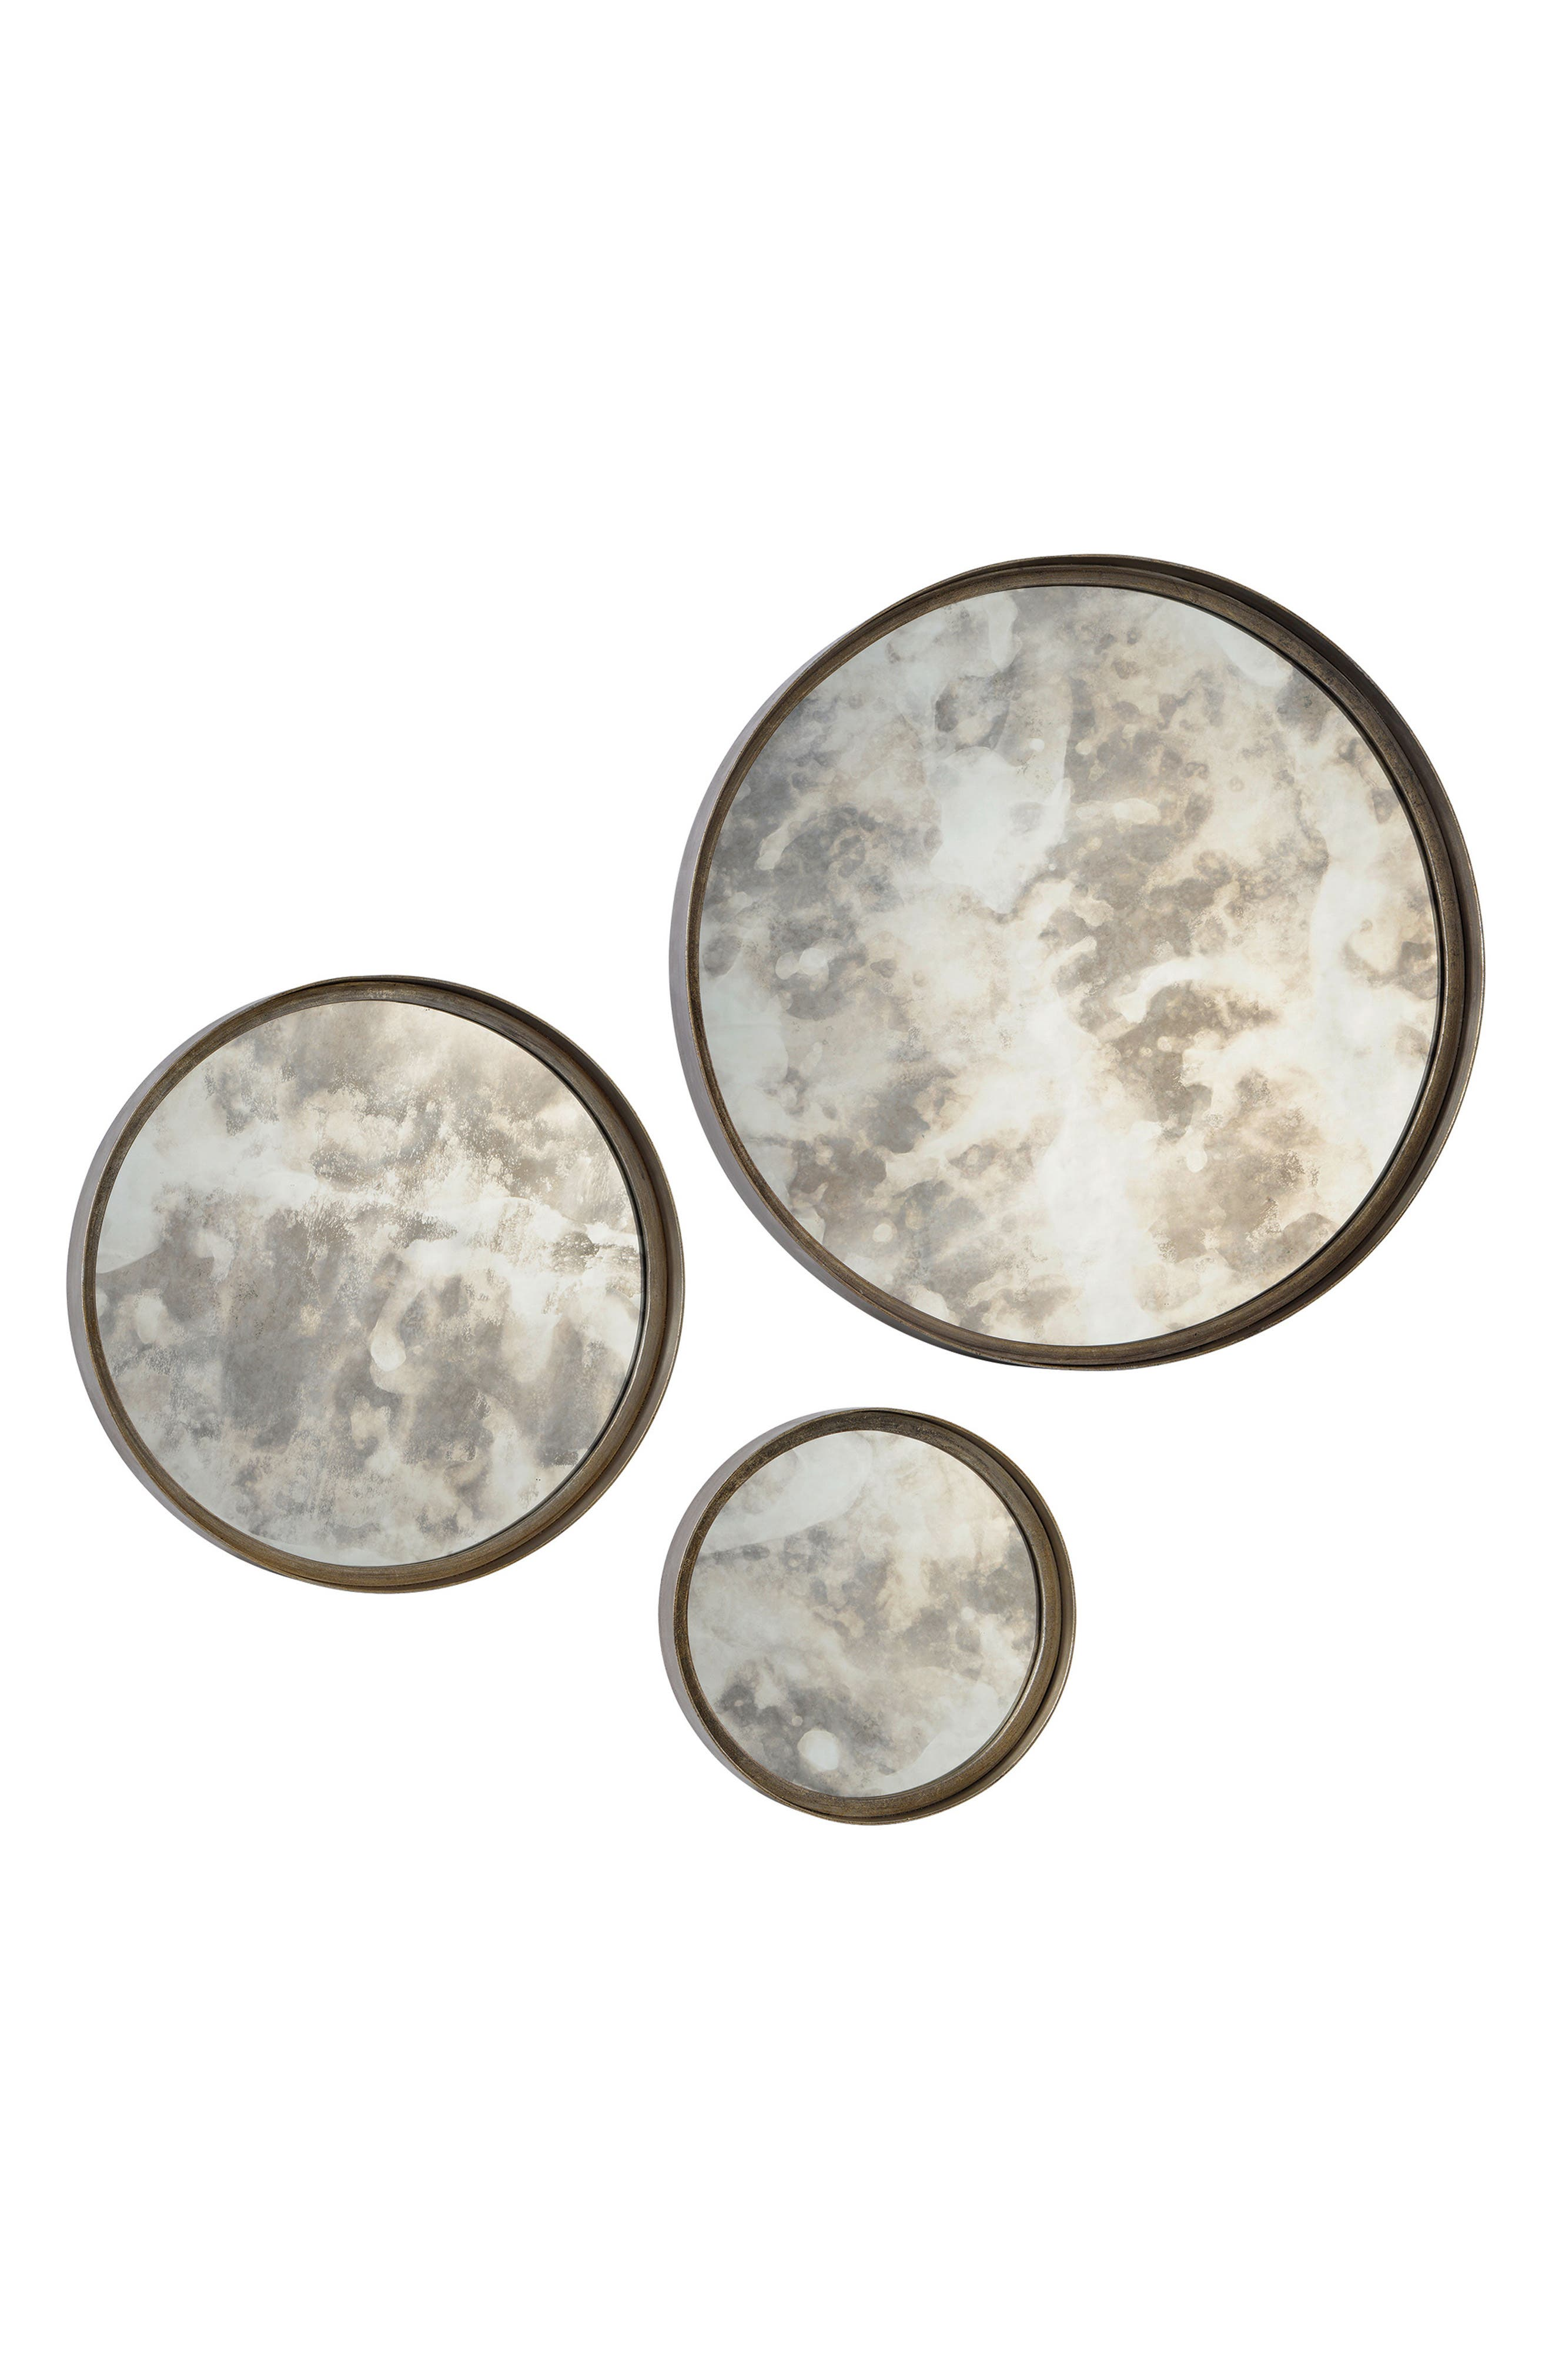 Shire Set of 3 Mirrors,                         Main,                         color, Antique Silver